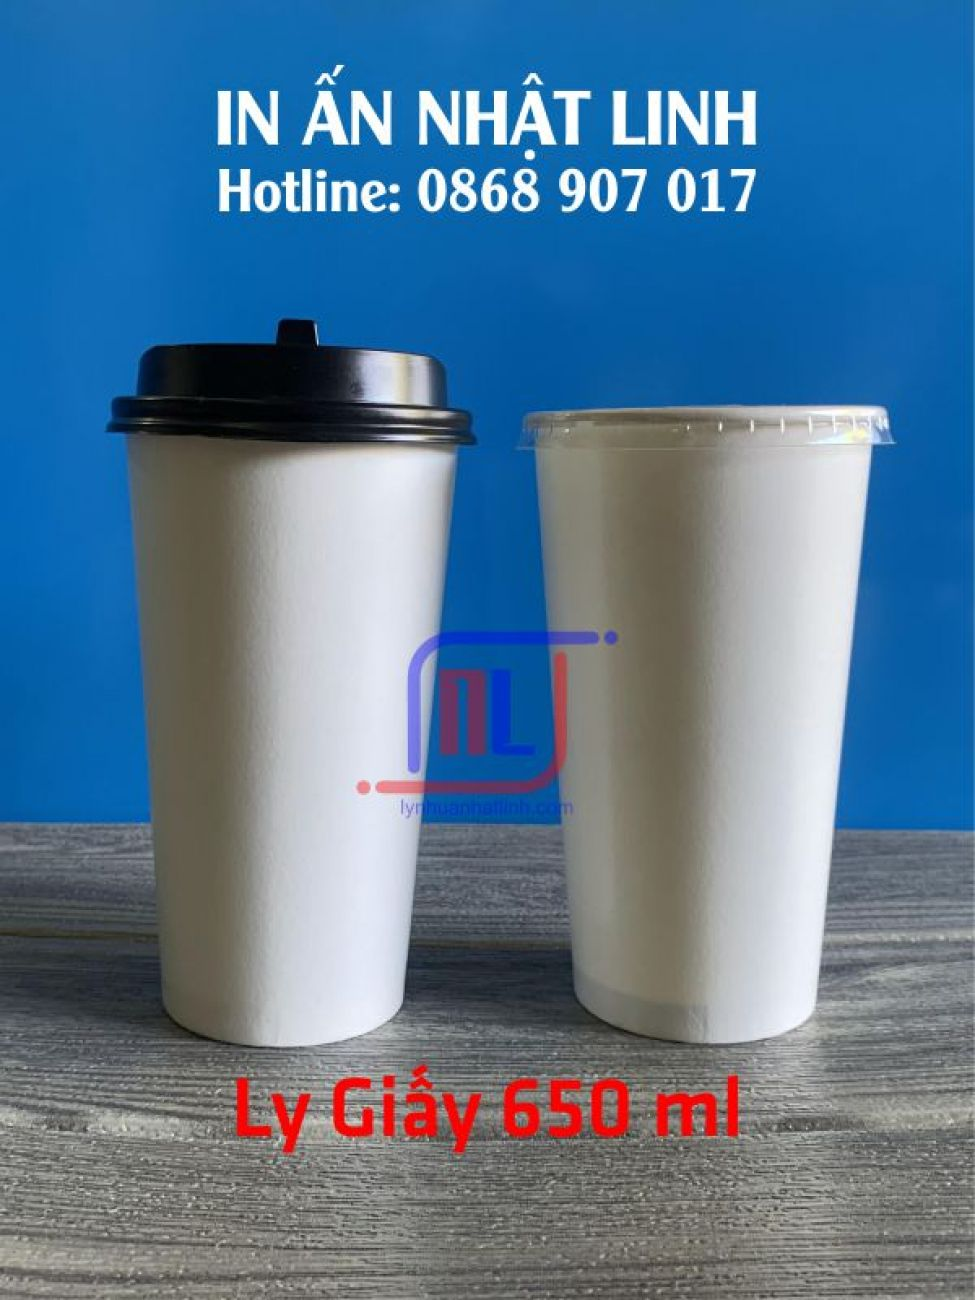 Ly giấy 650ml